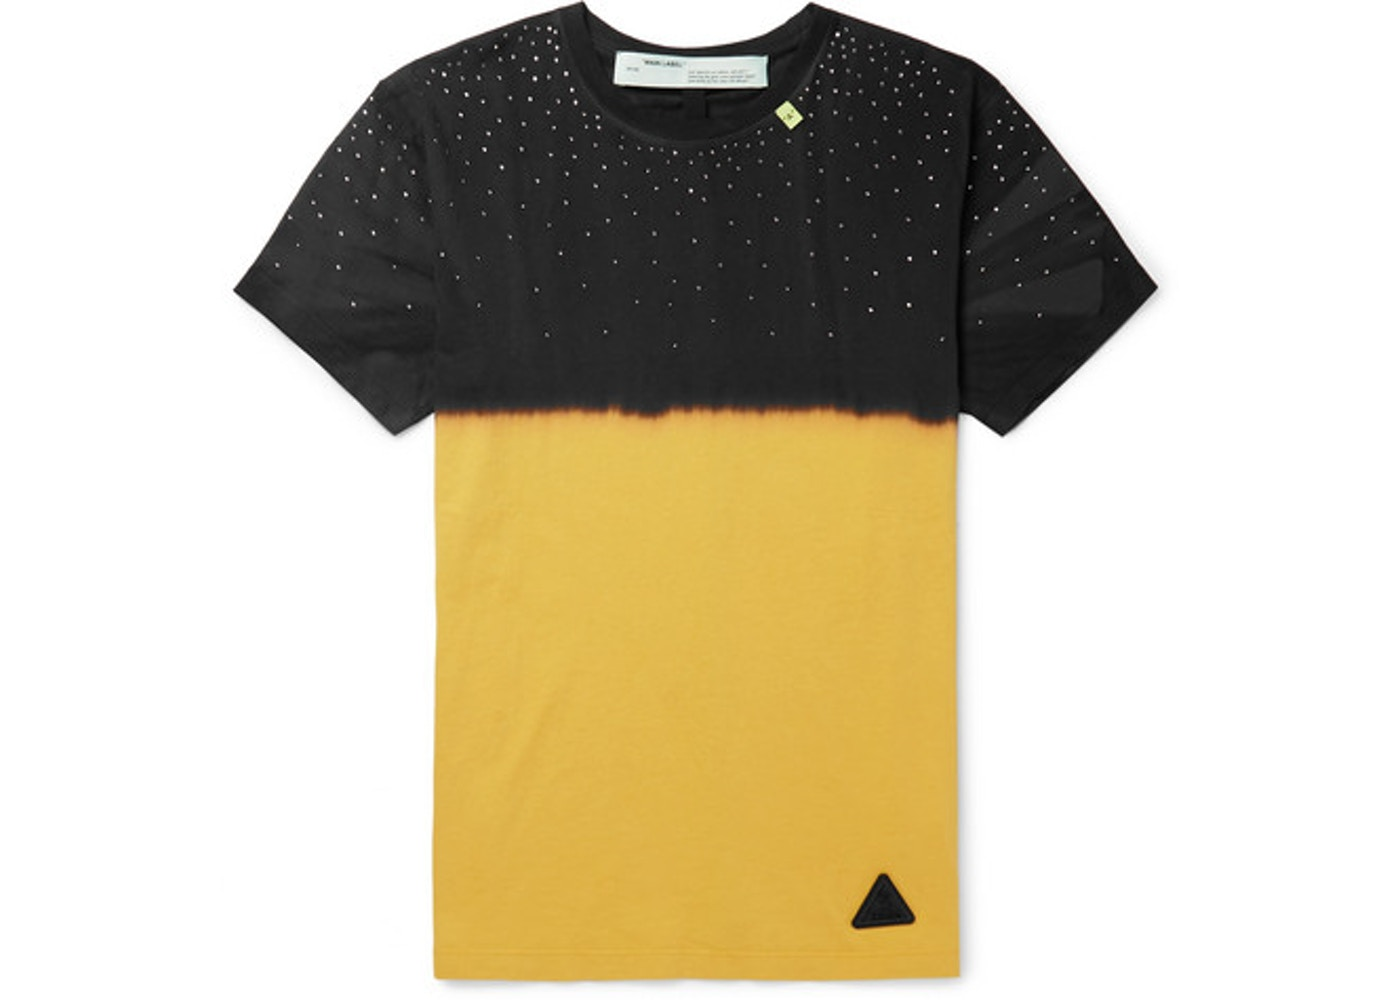 ec6a4756 OFF-WHITE Slim Fit Embellished Tie Dyed T-Shirt Black/Yellow - SS19